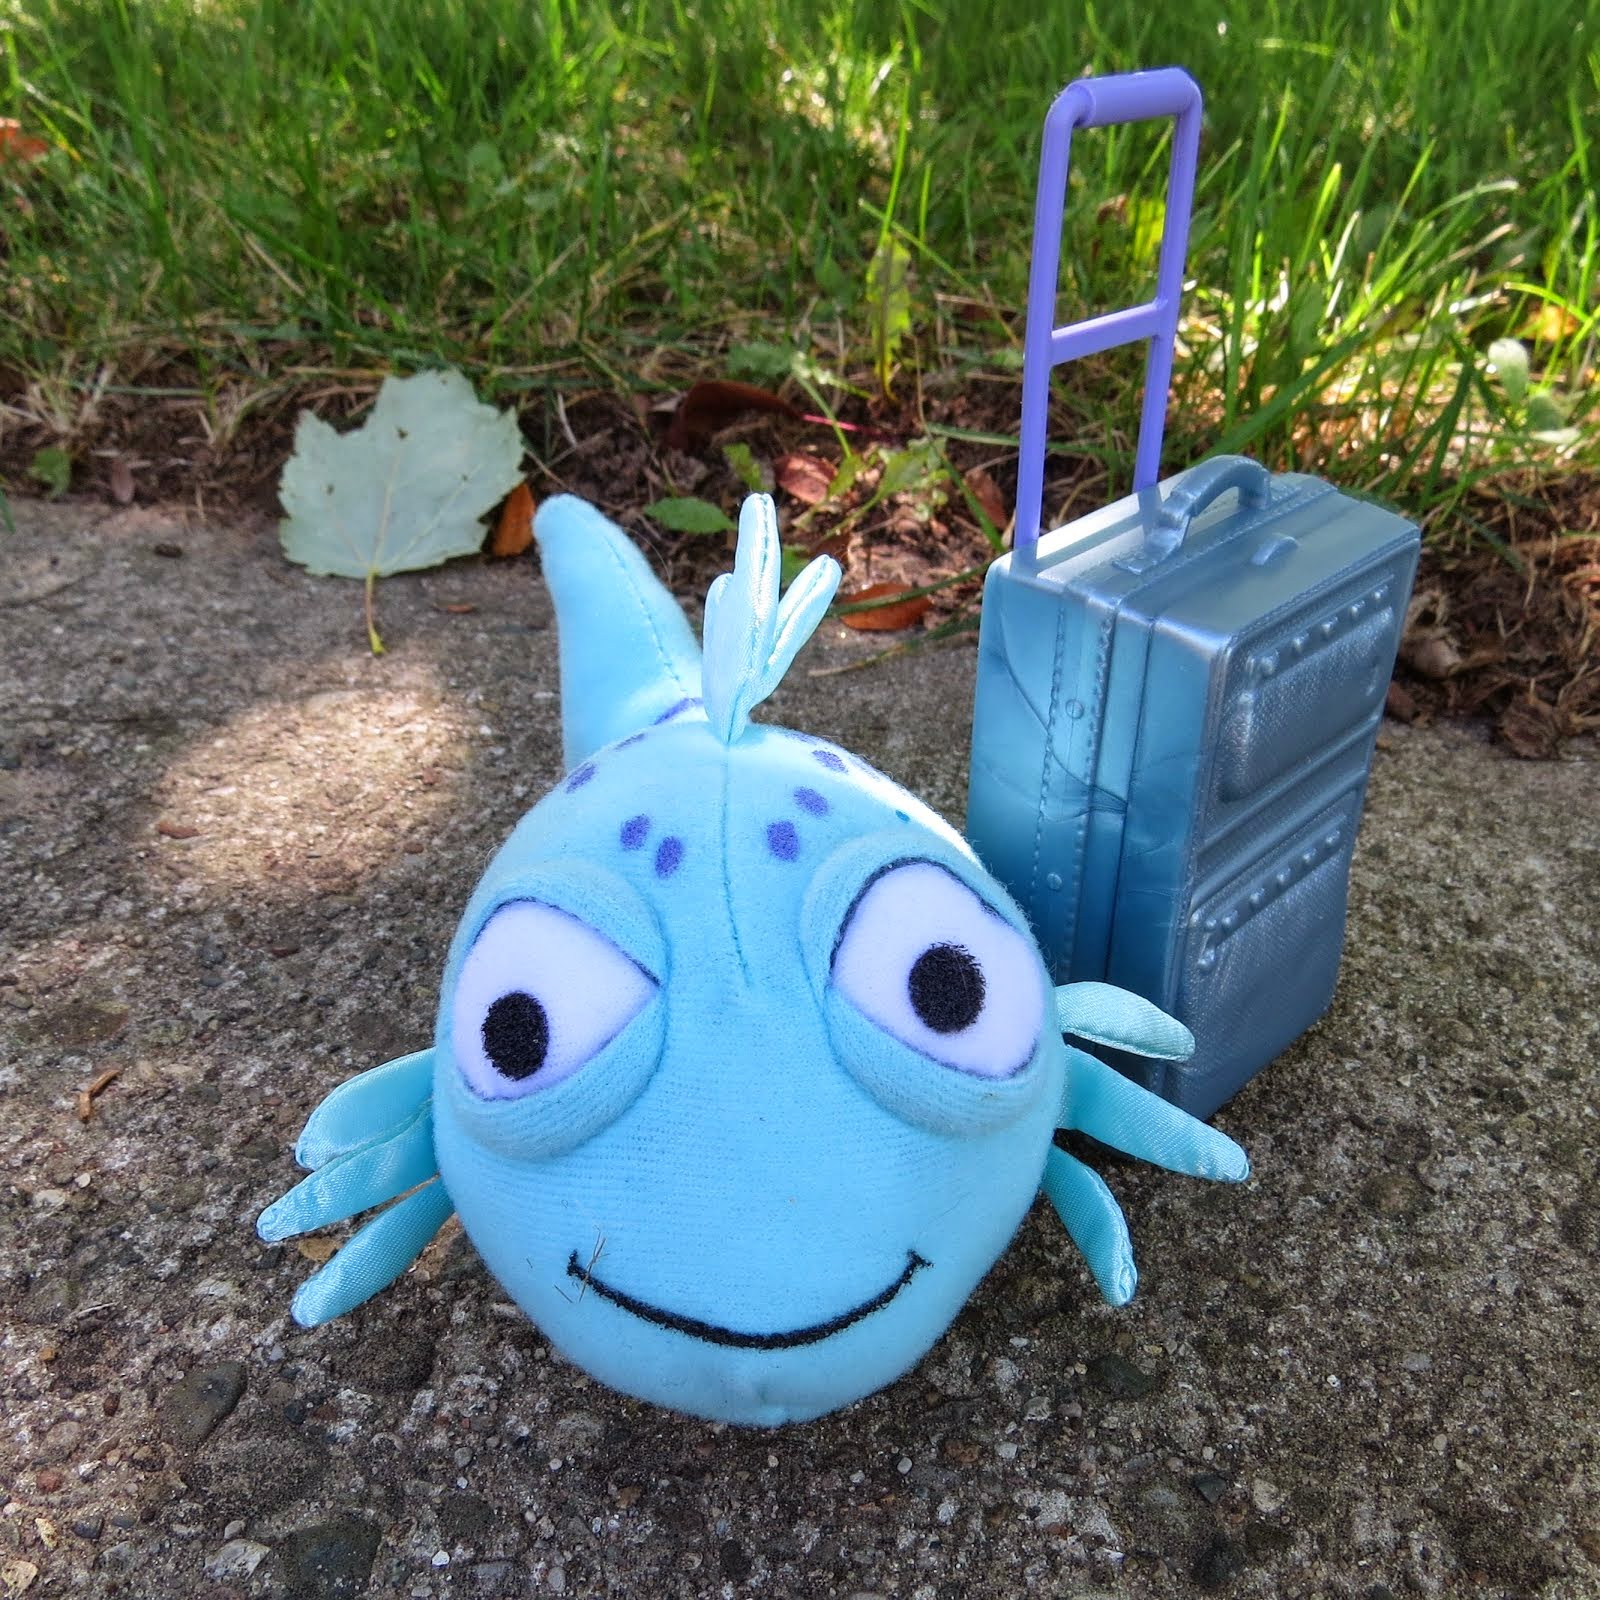 Pout-Pout Fish Goes to School Book Tour September 15-26, 2014!